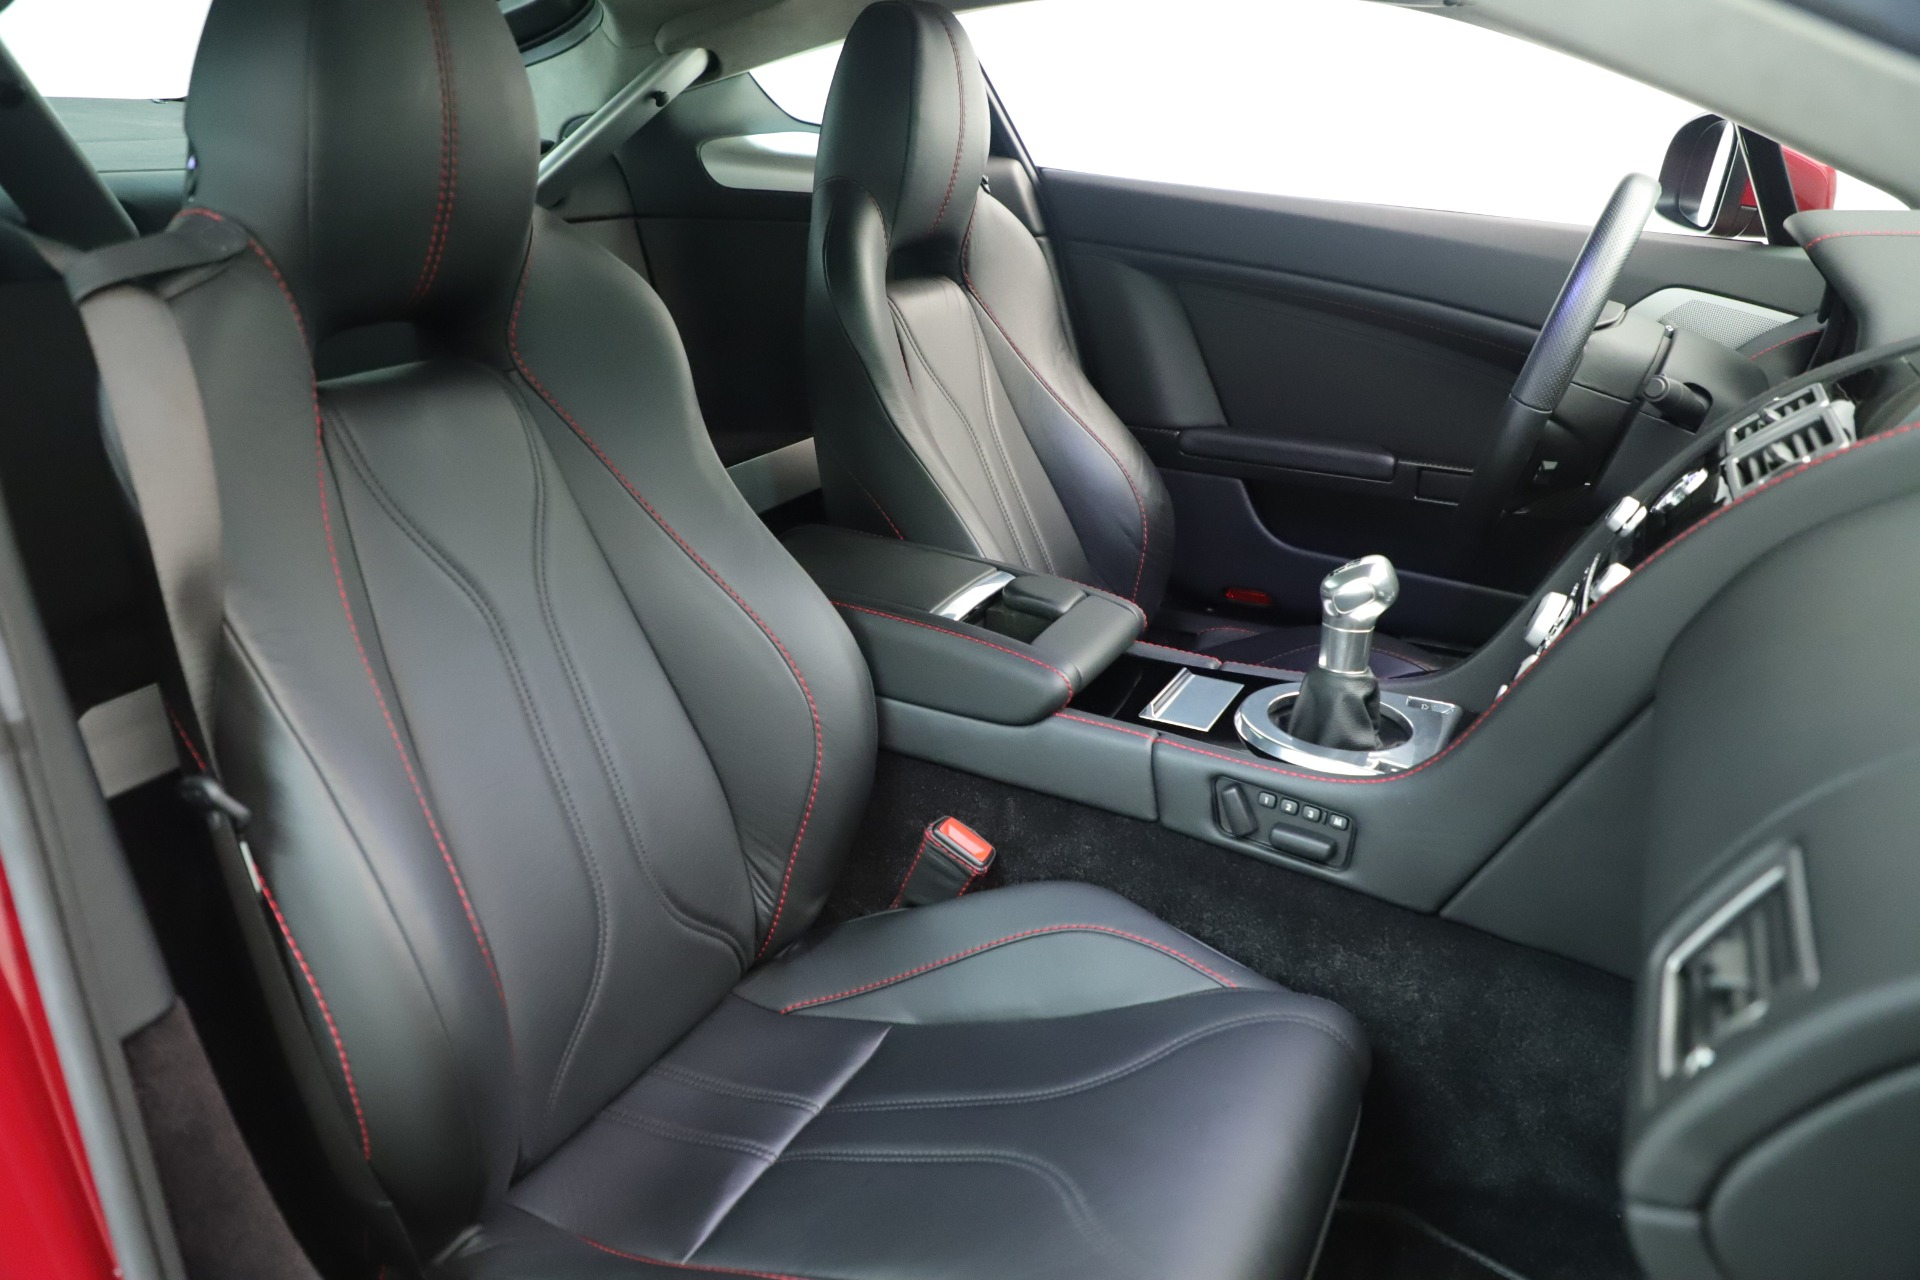 Used 2011 Aston Martin V12 Vantage Coupe For Sale In Westport, CT 3395_p31